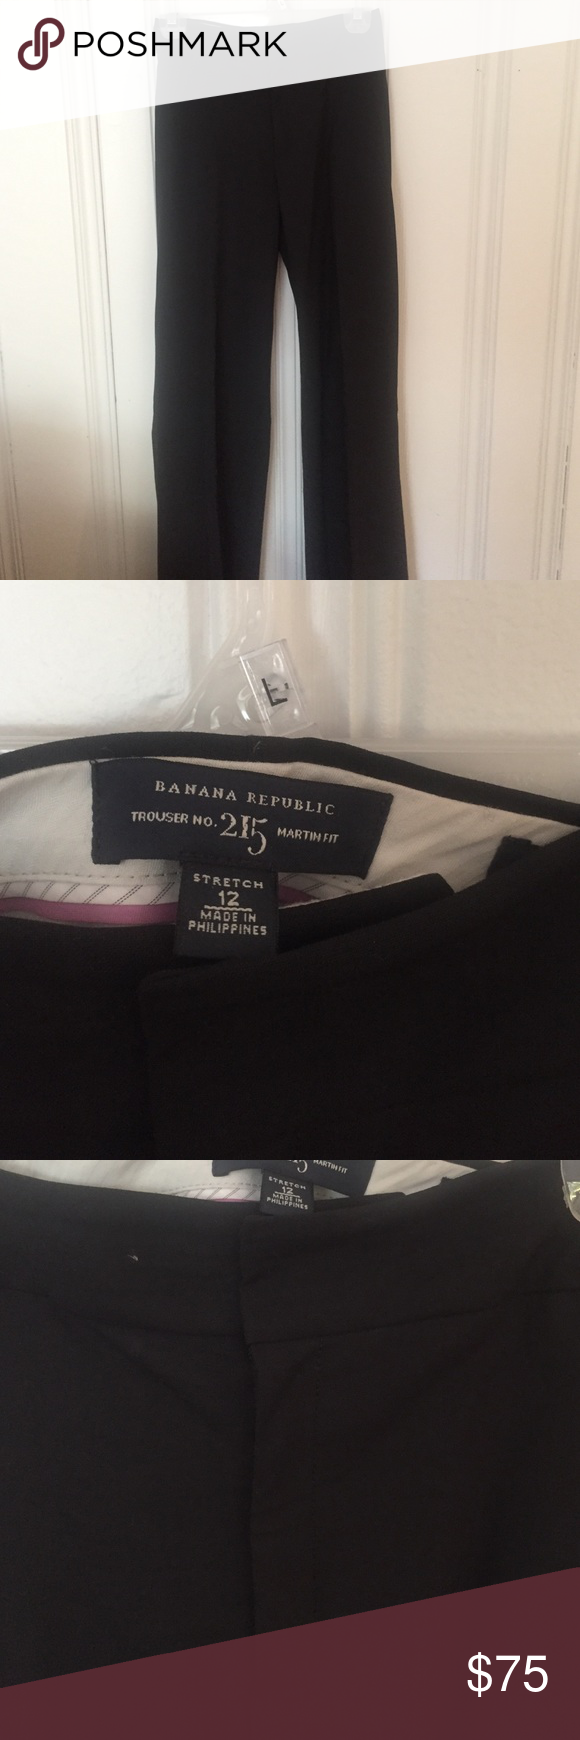 Banana Republic, Martin Fit trousers, size12, VGUC Banana Republic, size 12, Martin Fit trousers, VGUC - no Rea signs of wear, they've just been in storage, I have matching blazer- make me an offer! Banana Republic Pants Trousers